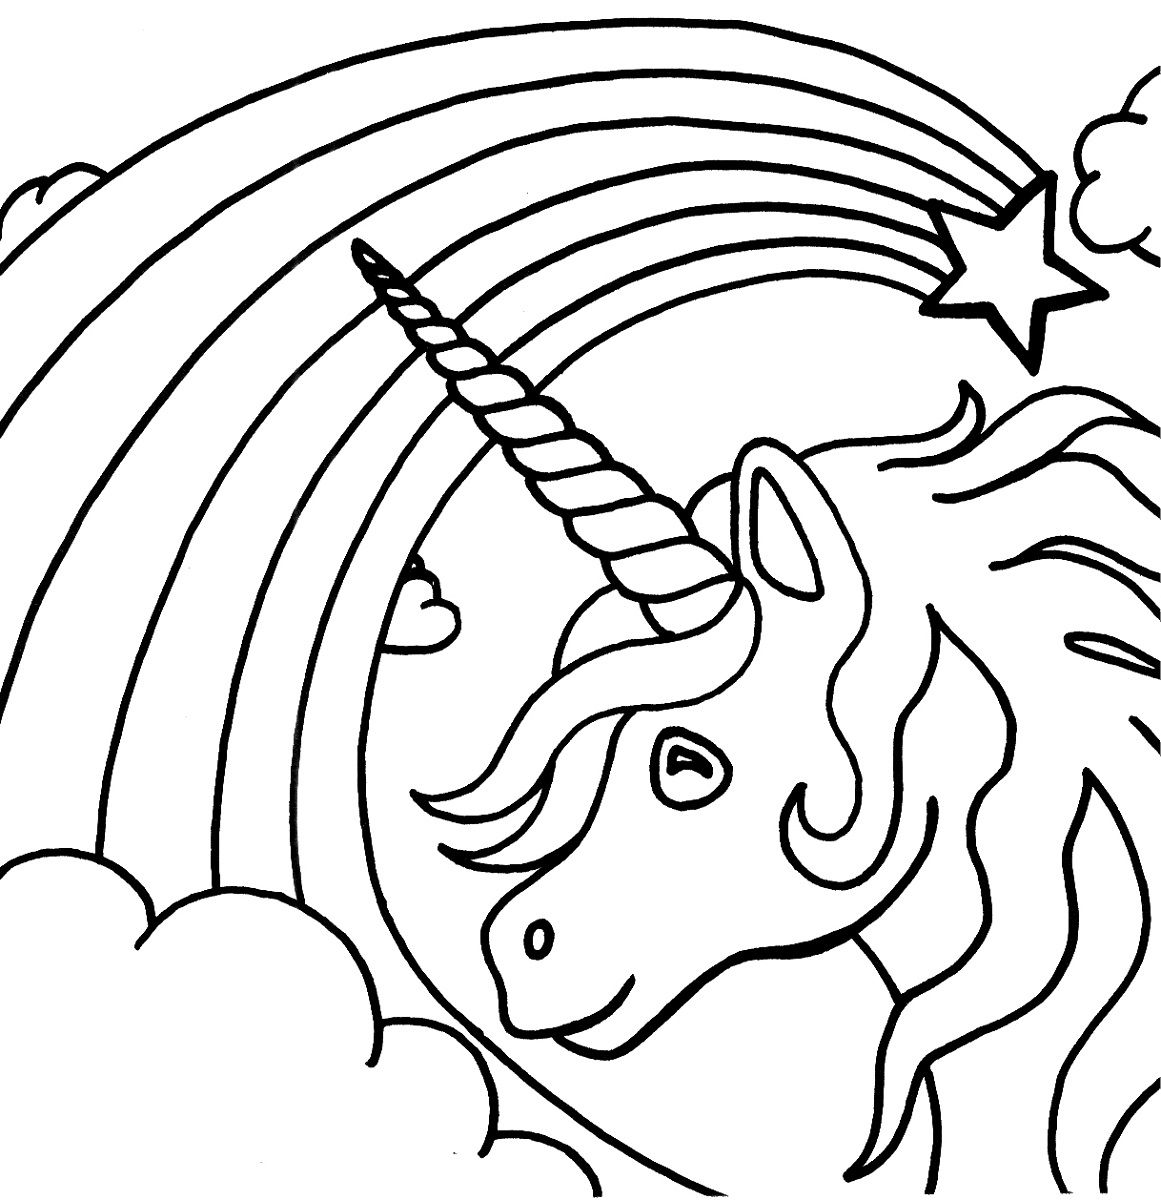 Best Of Cute Cartoon Unicorn Coloring Pages Design Printable Coloring Sheet Unicorn Coloring Pages Emoji Coloring Pages Cute Coloring Pages